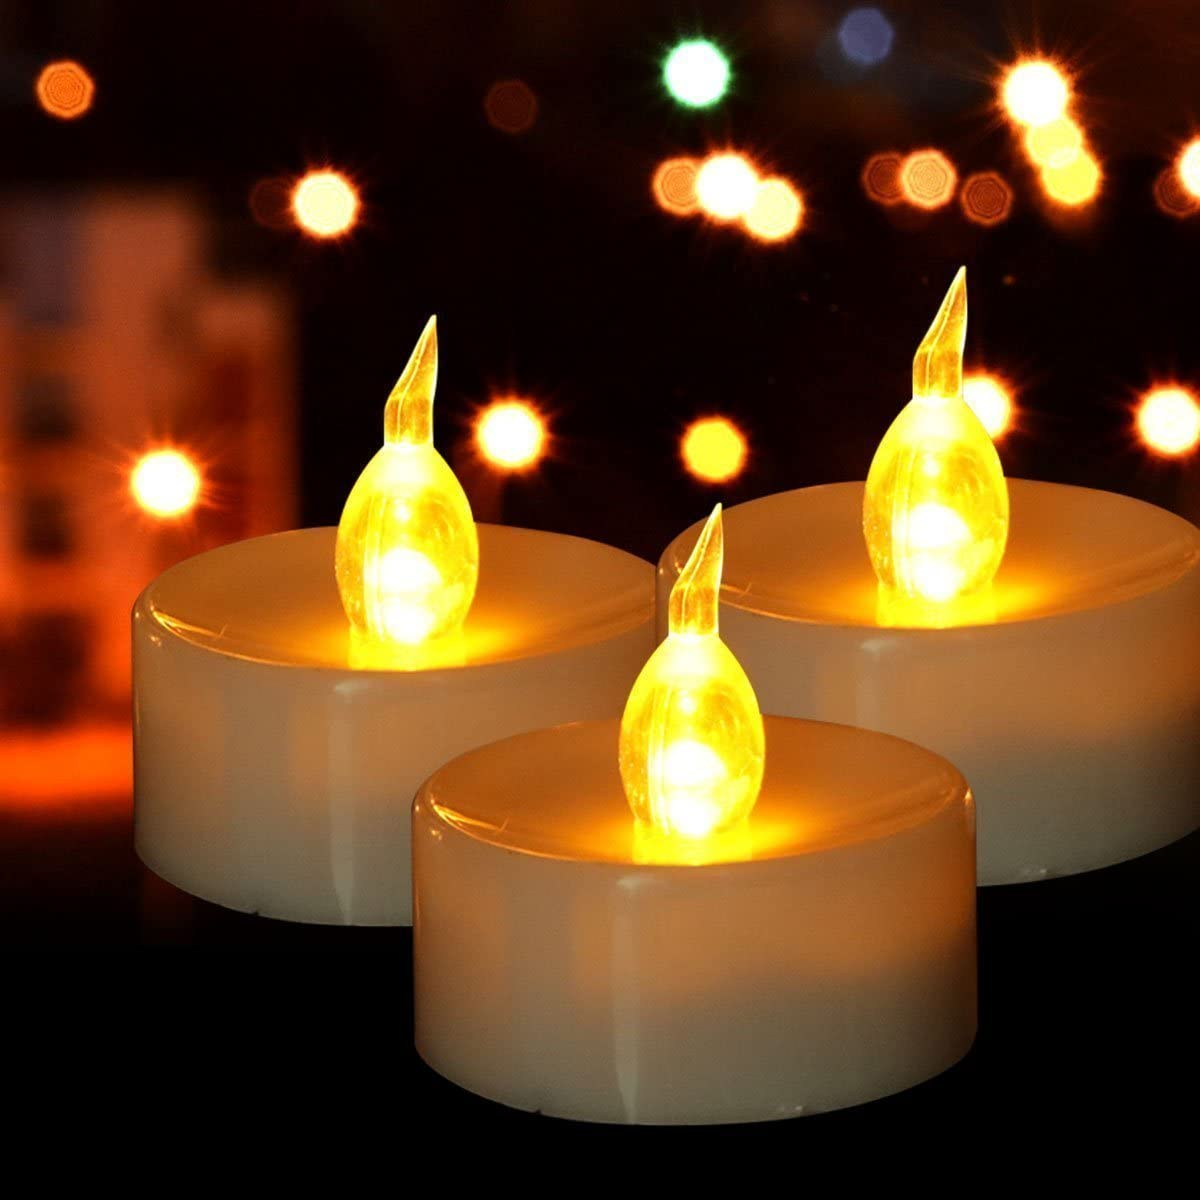 100 Pack Flameless LED Tea Light Candles 100 Hours Realistic Flickering Bulb Battery Operated Tea Lights Seasonal /& Festival Celebration Electric Fake Candle in Warm Yellow Tea Lights